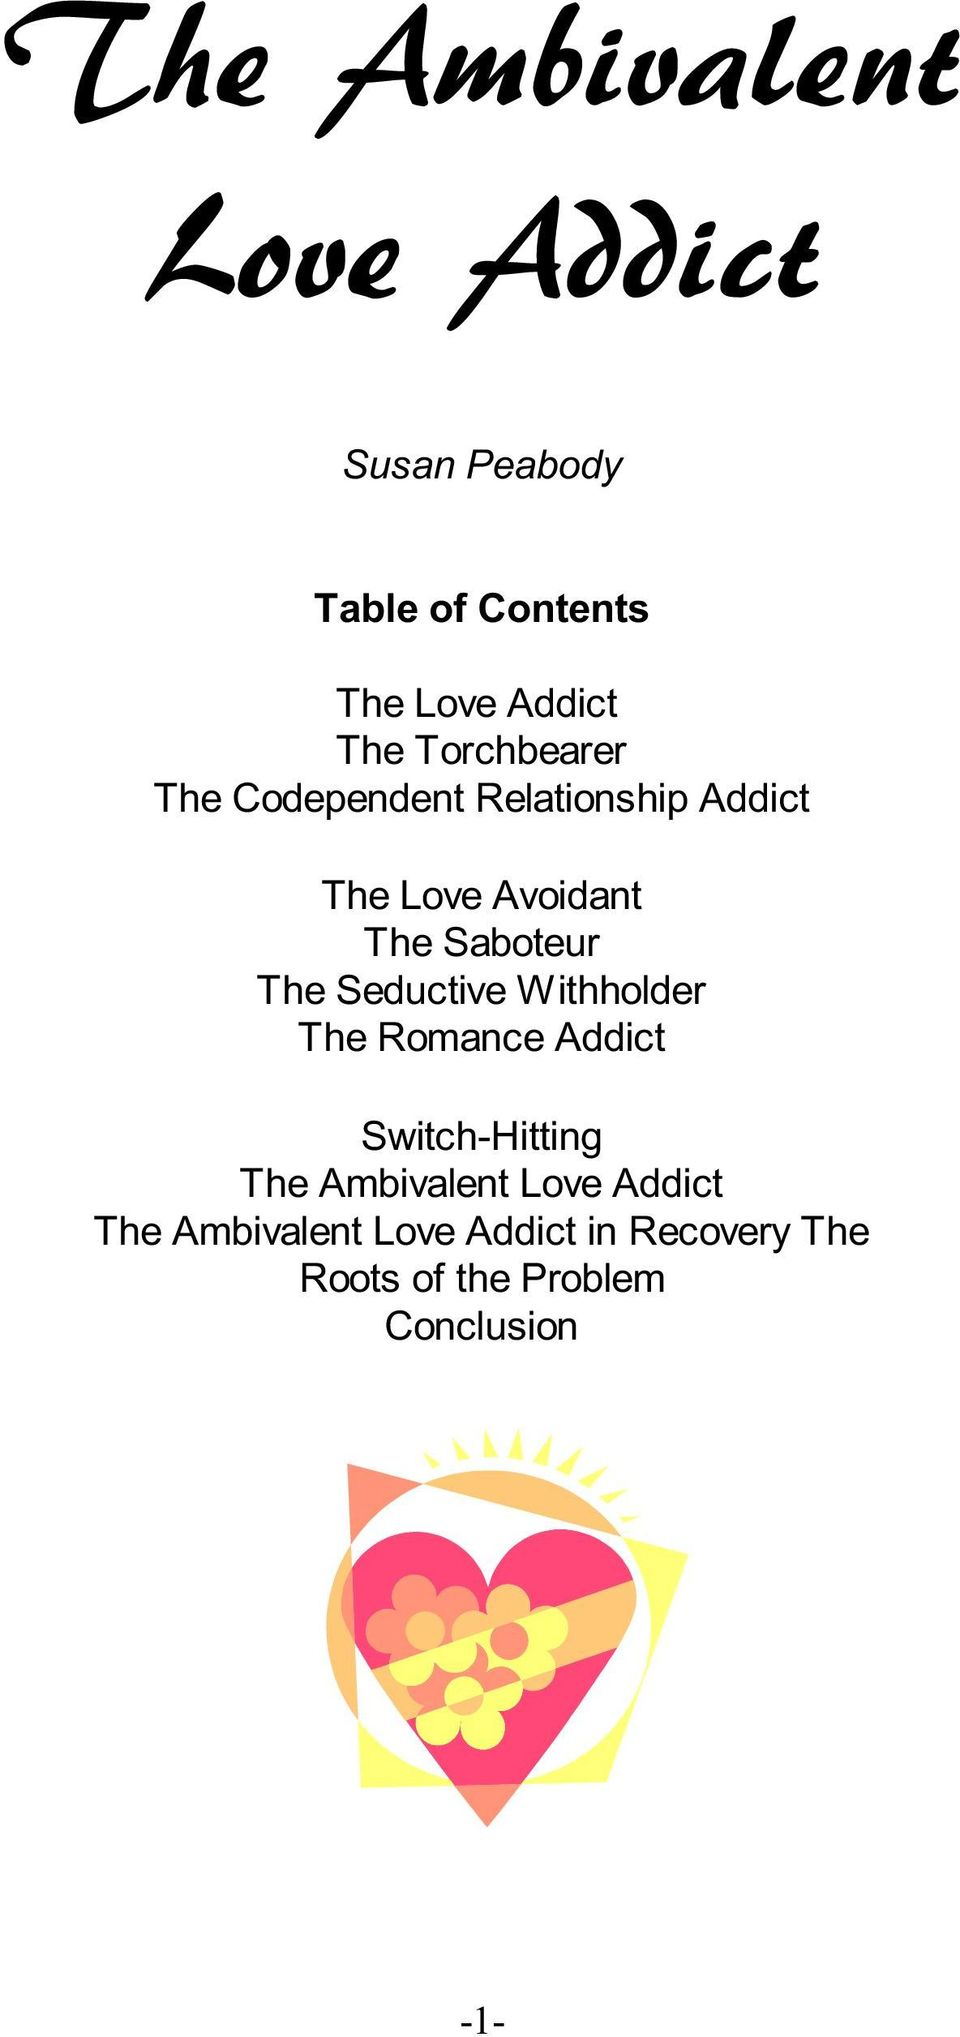 The Seductive Withholder The Romance Addict Switch-Hitting The Ambivalent Love